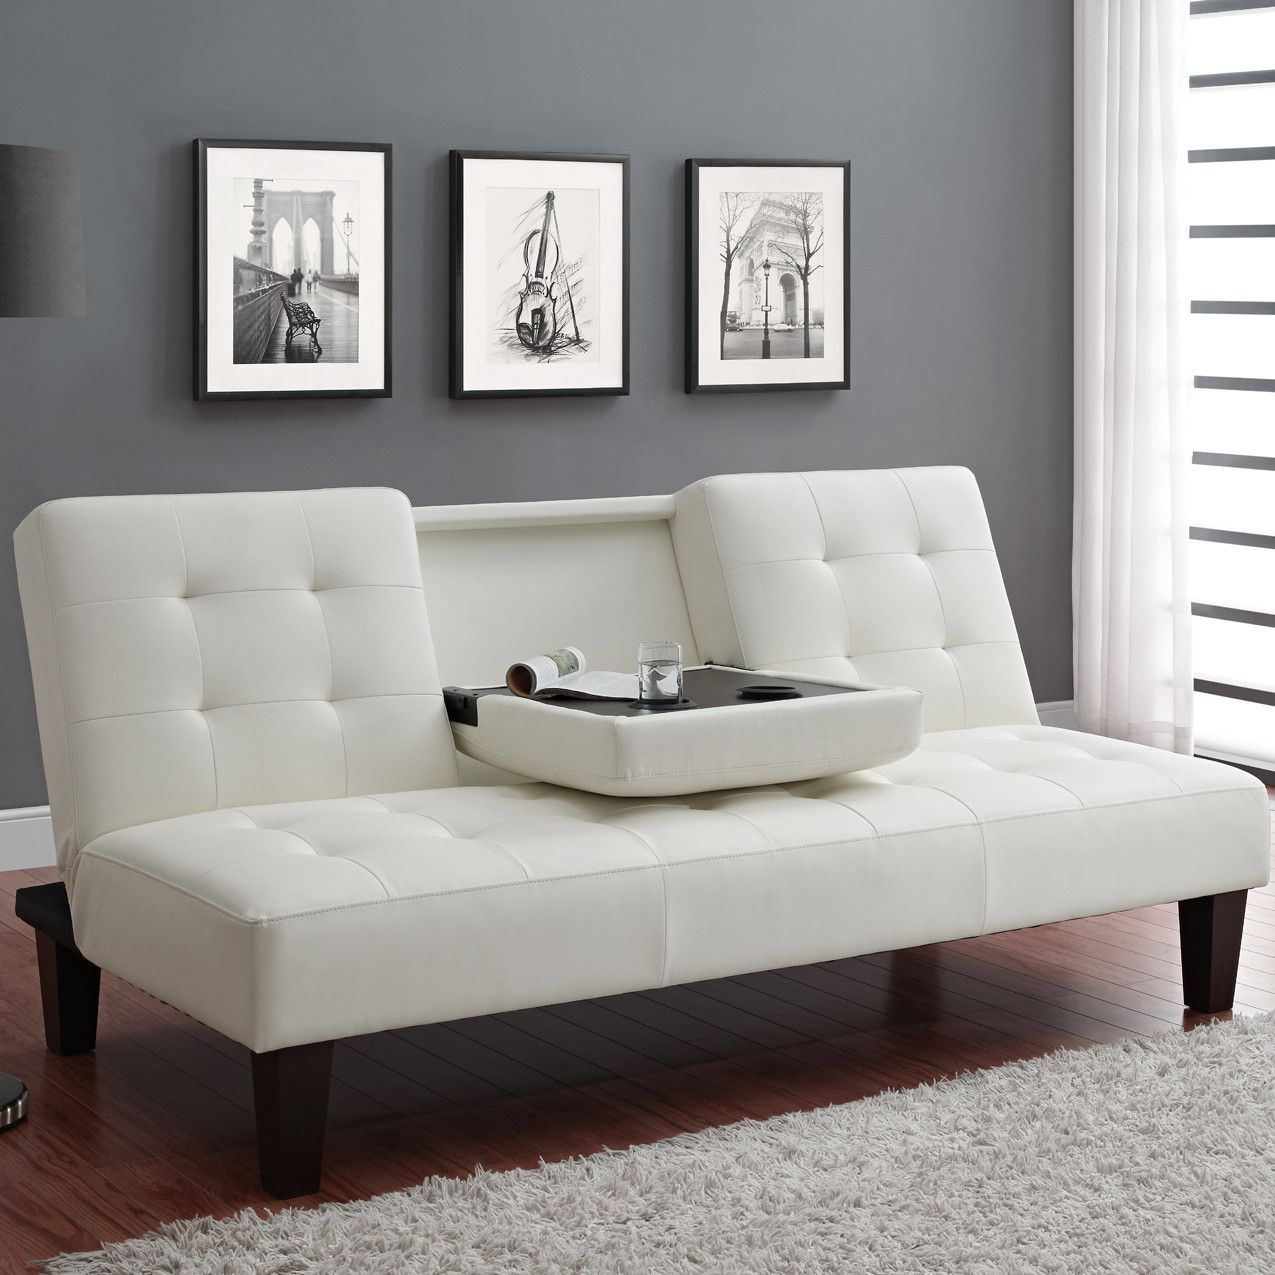 Marcy convertible sofa products pinterest tiny houses and house